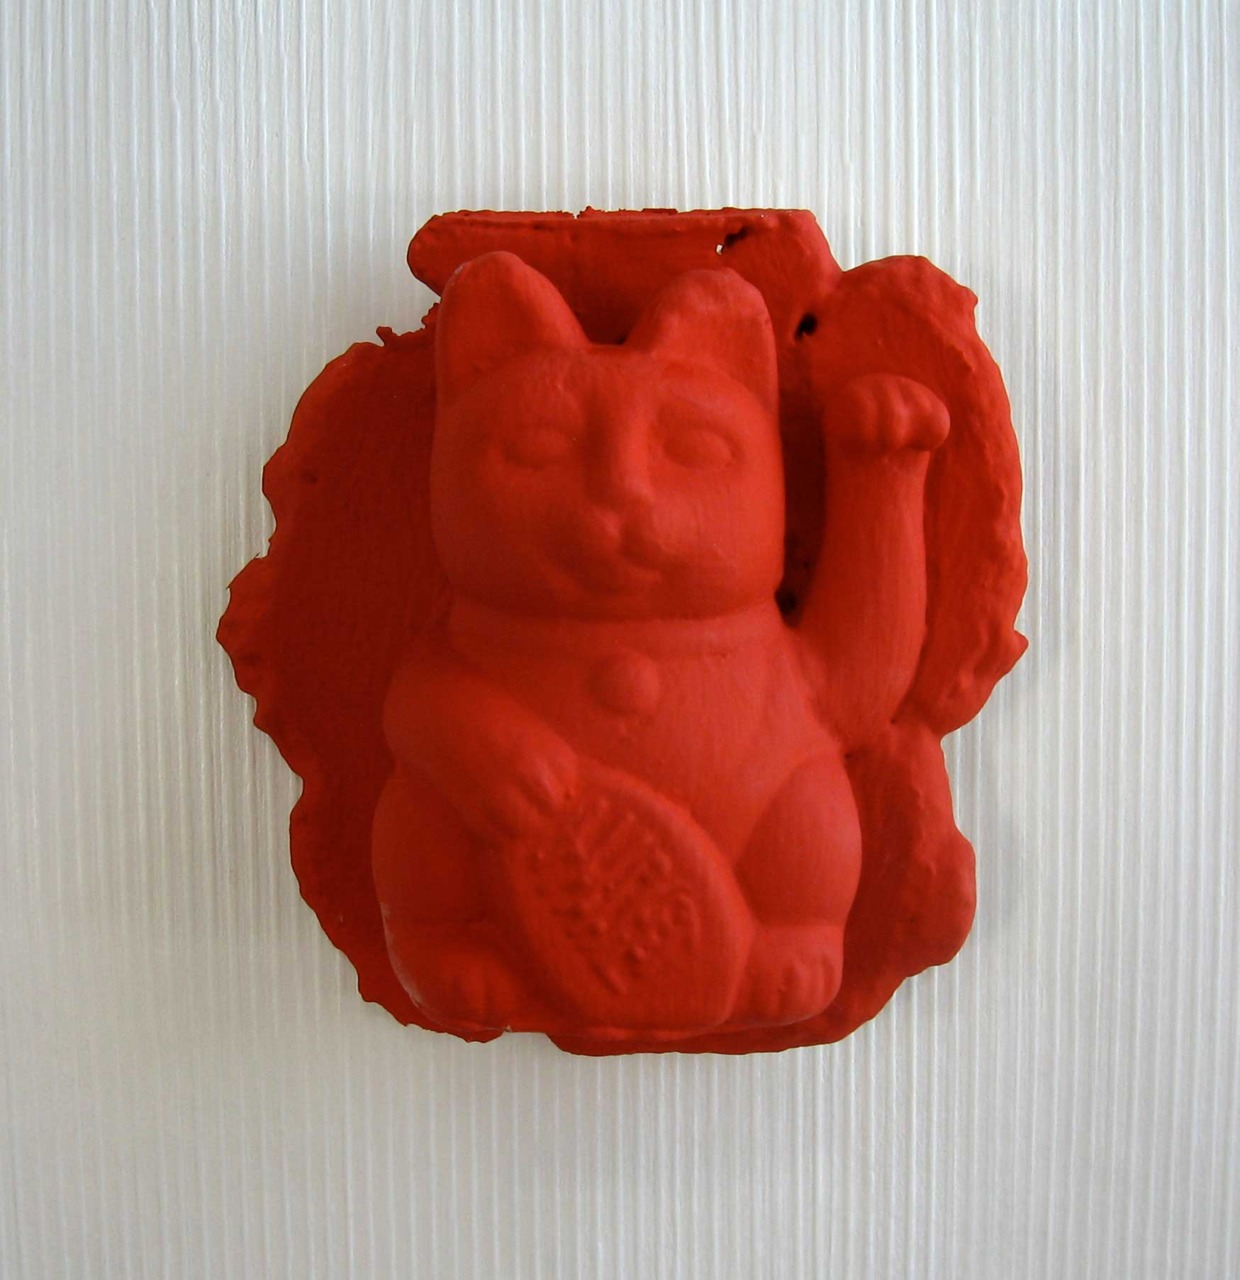 3-D Wallpaper!  Prototype for a my new line. Foam Cast, Japan Colored Kitty.  Light Weight and Durable atop an venetian medium Strie, painted with Farrrow & Ball Clay Based paint, ( zero - VOC = volatile organic compound ) ( www.alexkellum.com )